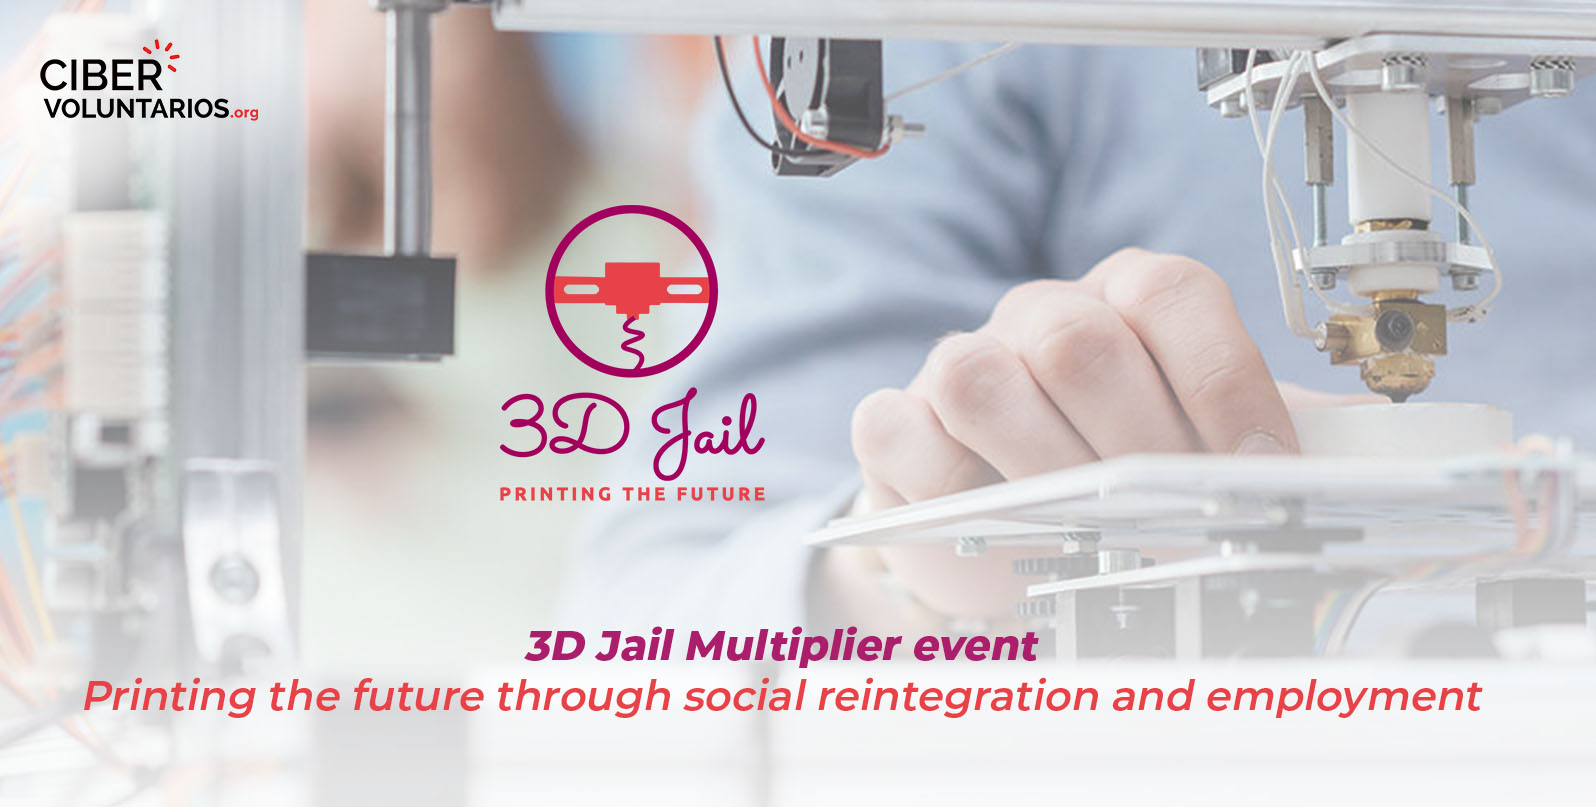 3D Jail Multiplier event: printing the future through social reintegration and employment